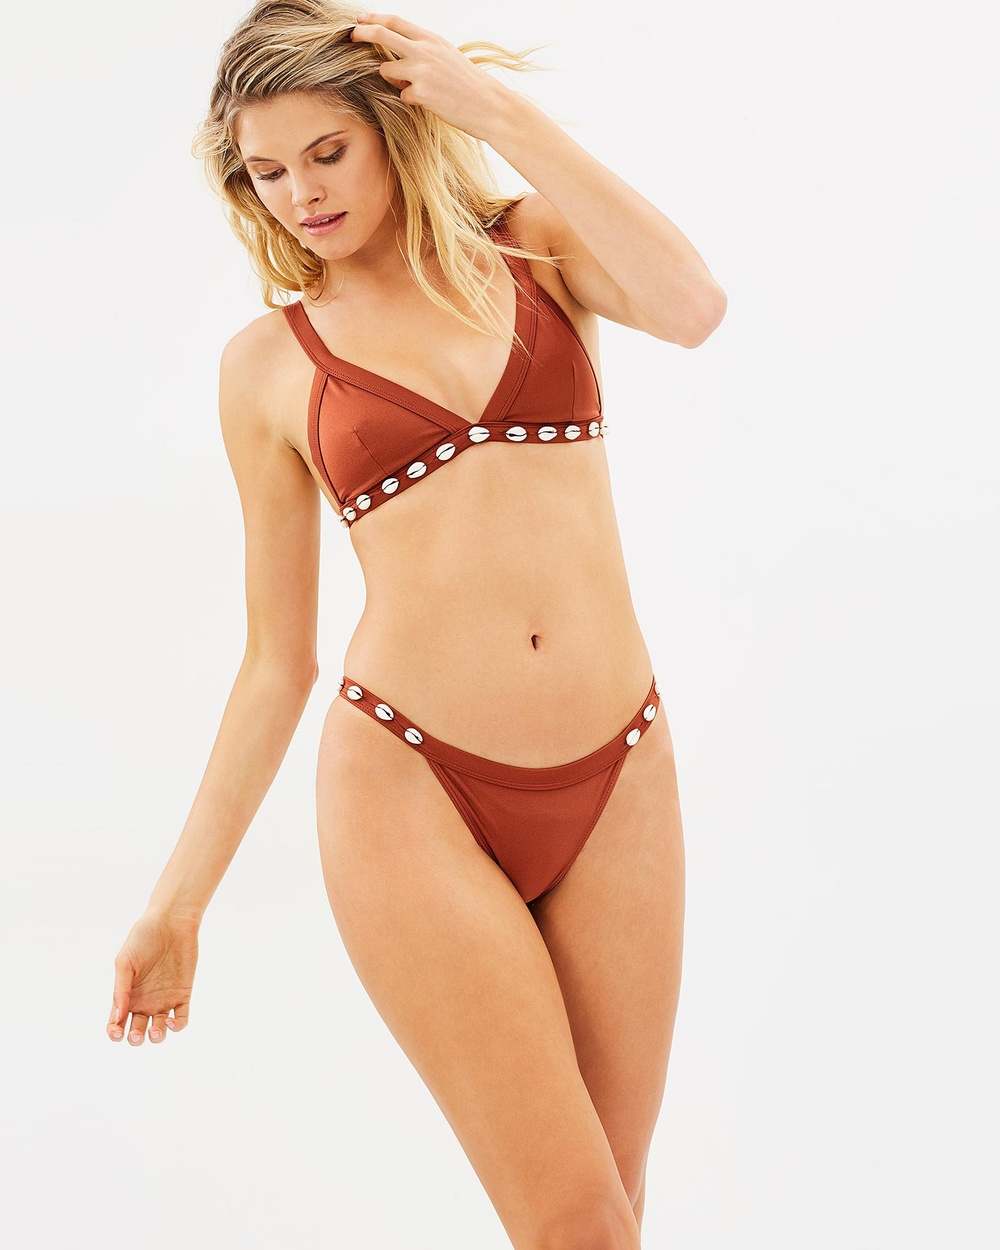 Local Luxe Swim Luxe Cowrie Pants Bikini Set Burnt Orange Luxe Cowrie Pants